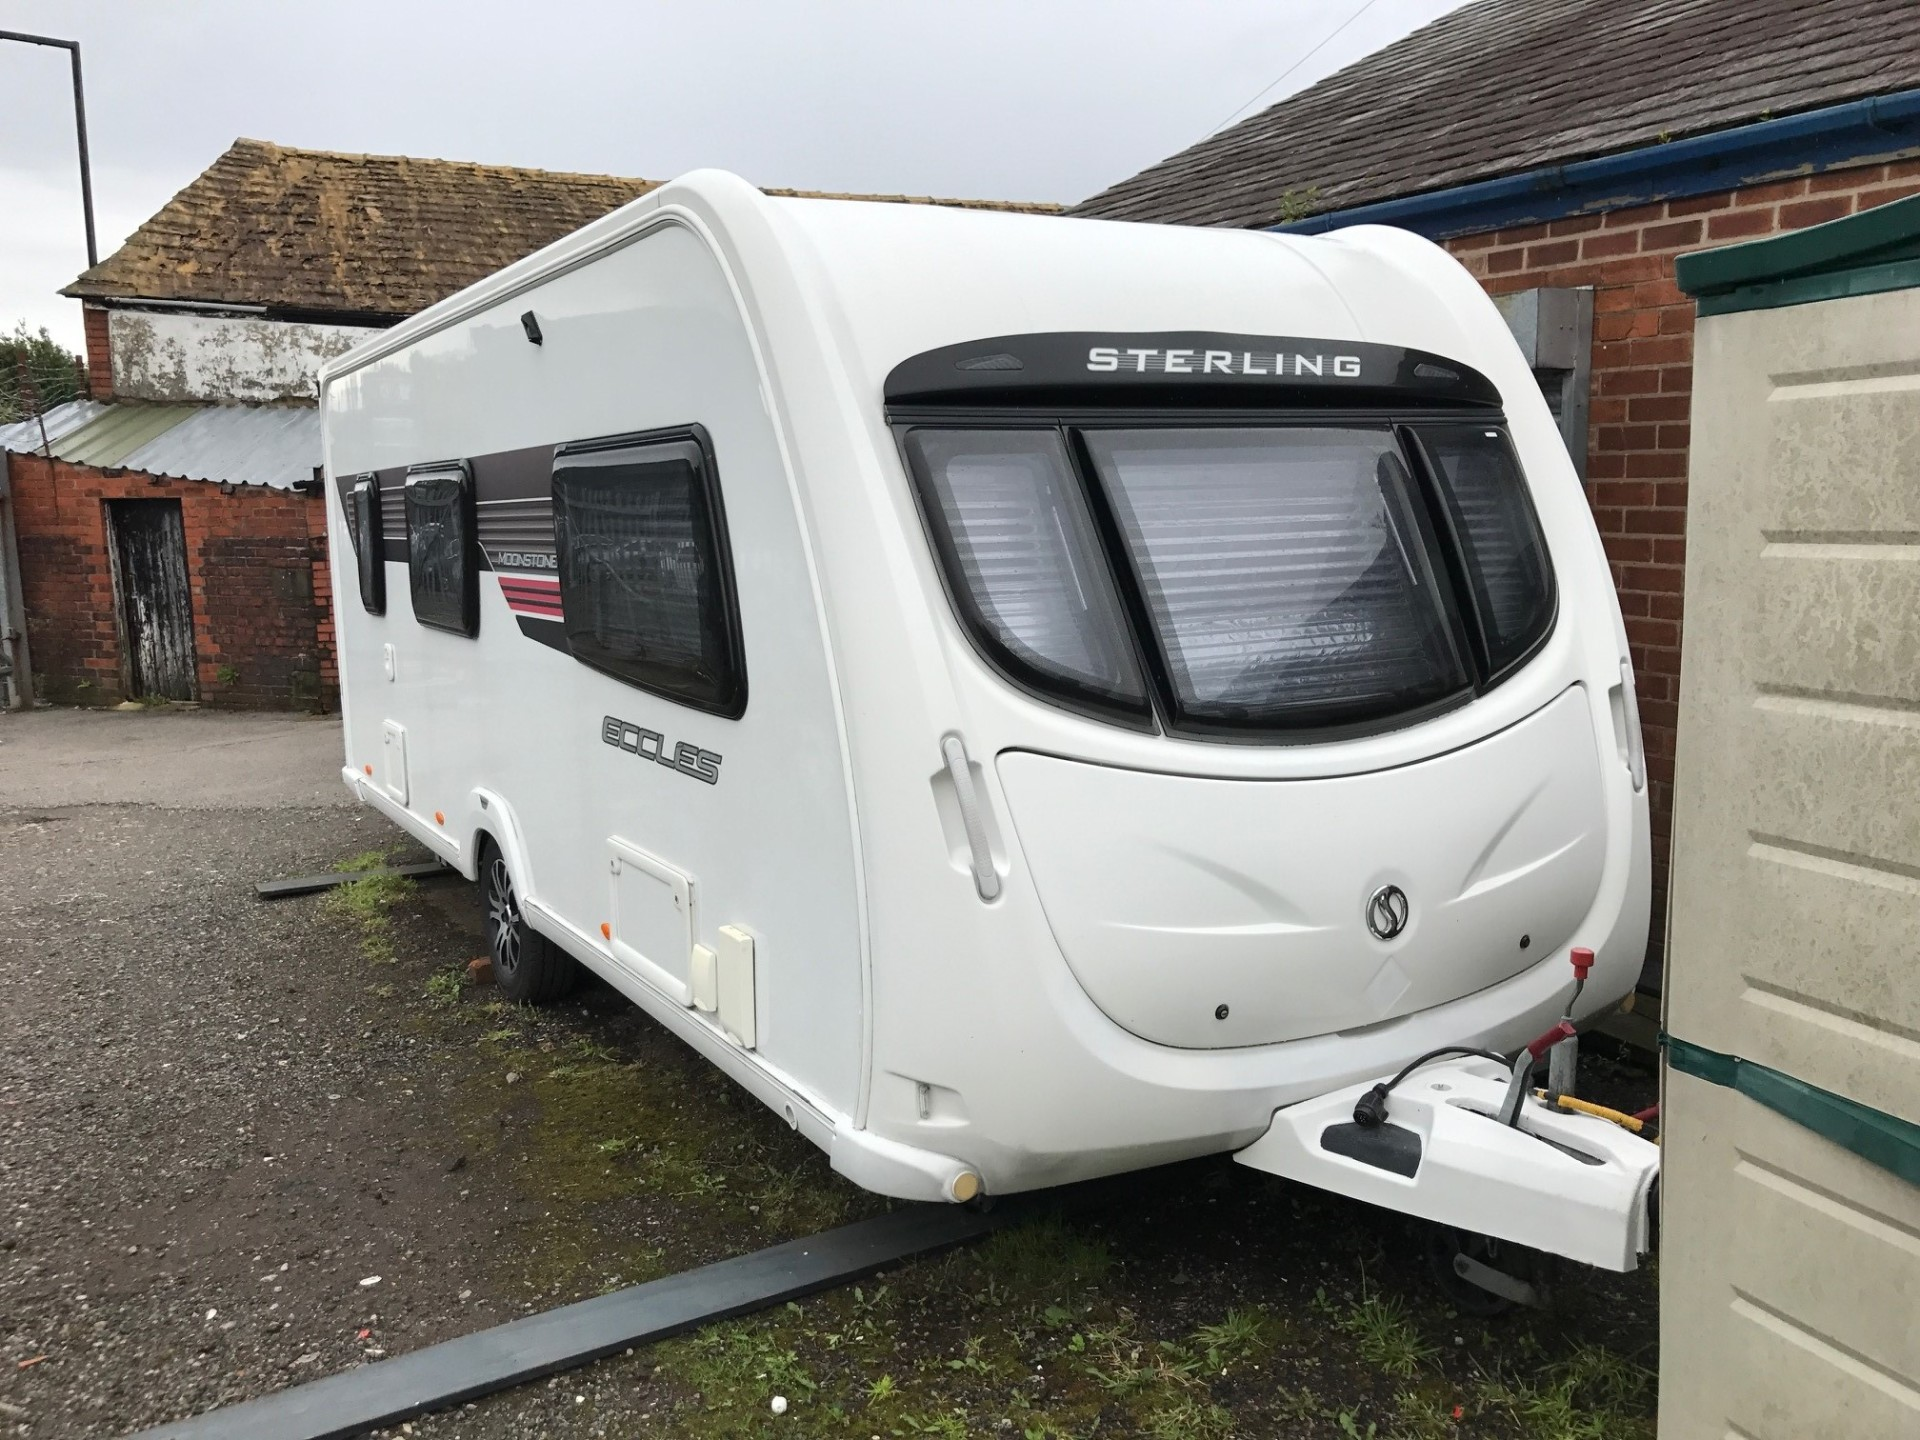 September 2017 Auction - Sterling Caravan, Brand New Furniture, Huge Range of Dedicated Micros CCTV